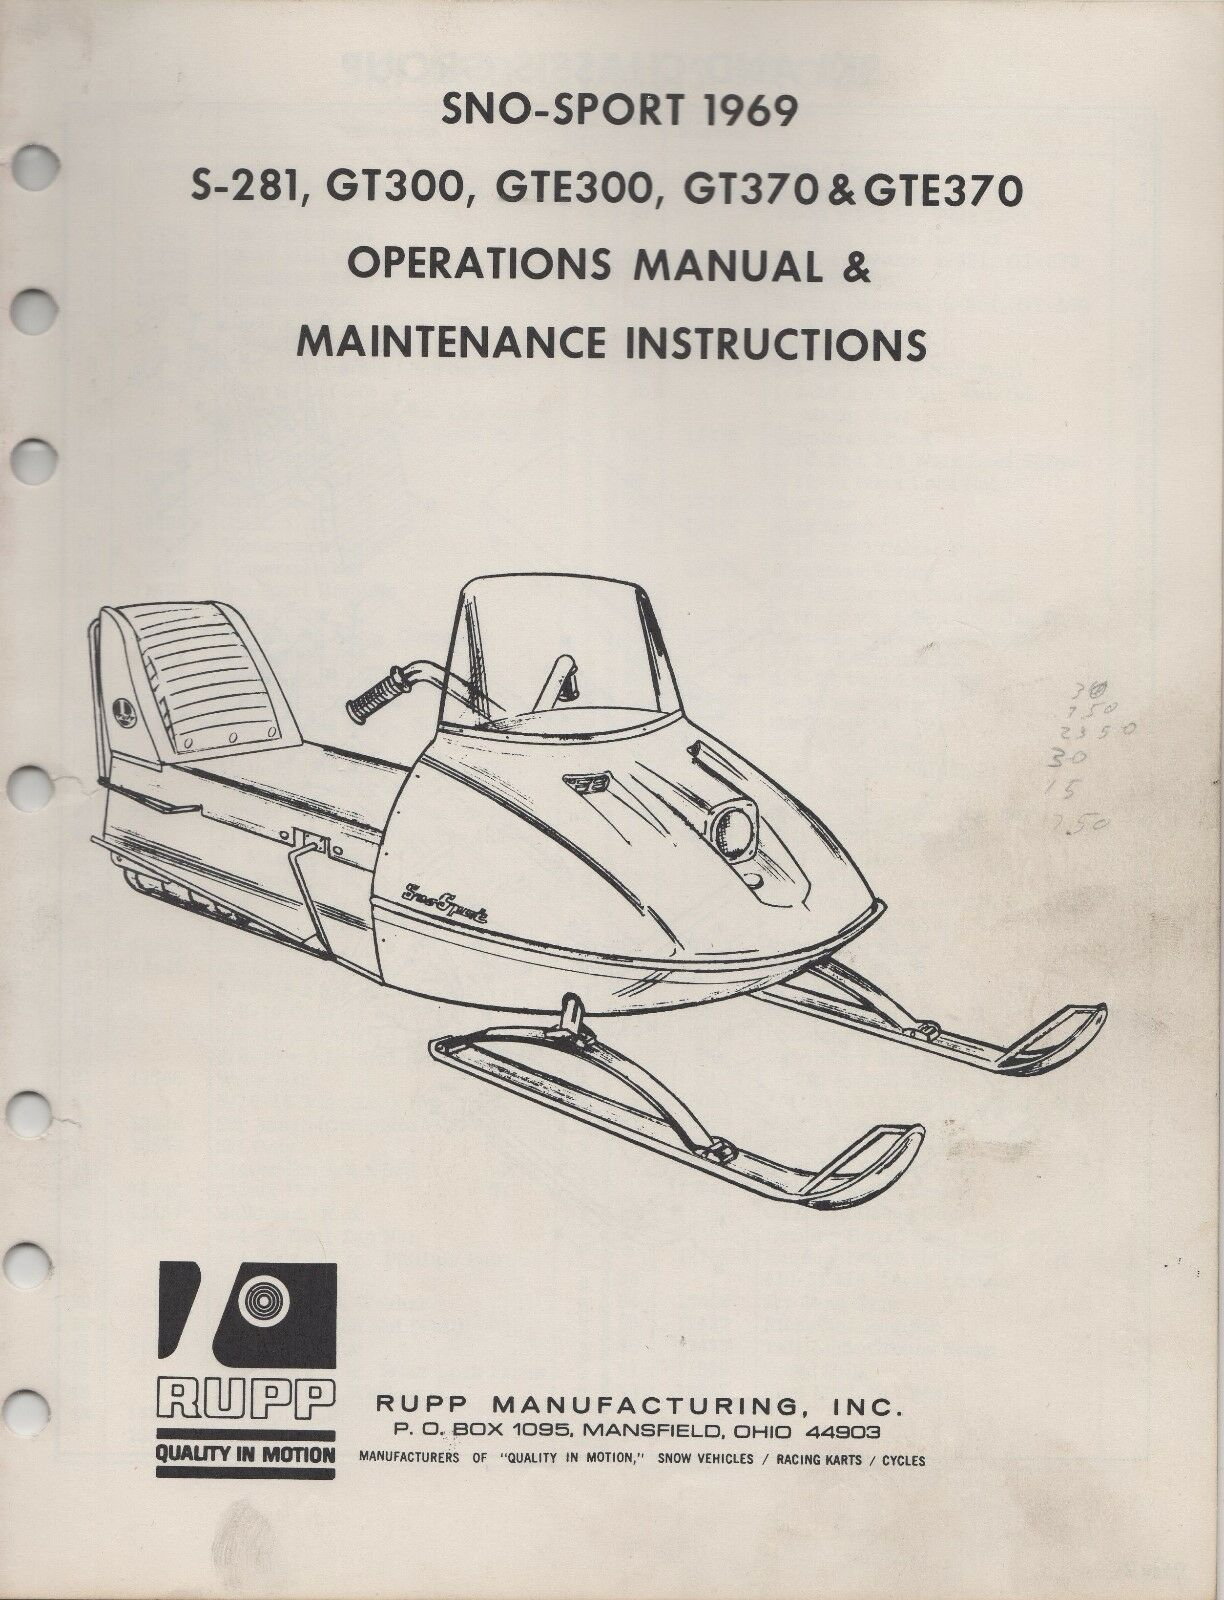 1969 RUPP SNOWMOBILE SNO-SPORT OPERATIONS ,MAINTENANCE MANUAL (644)   order now with big discount & free delivery